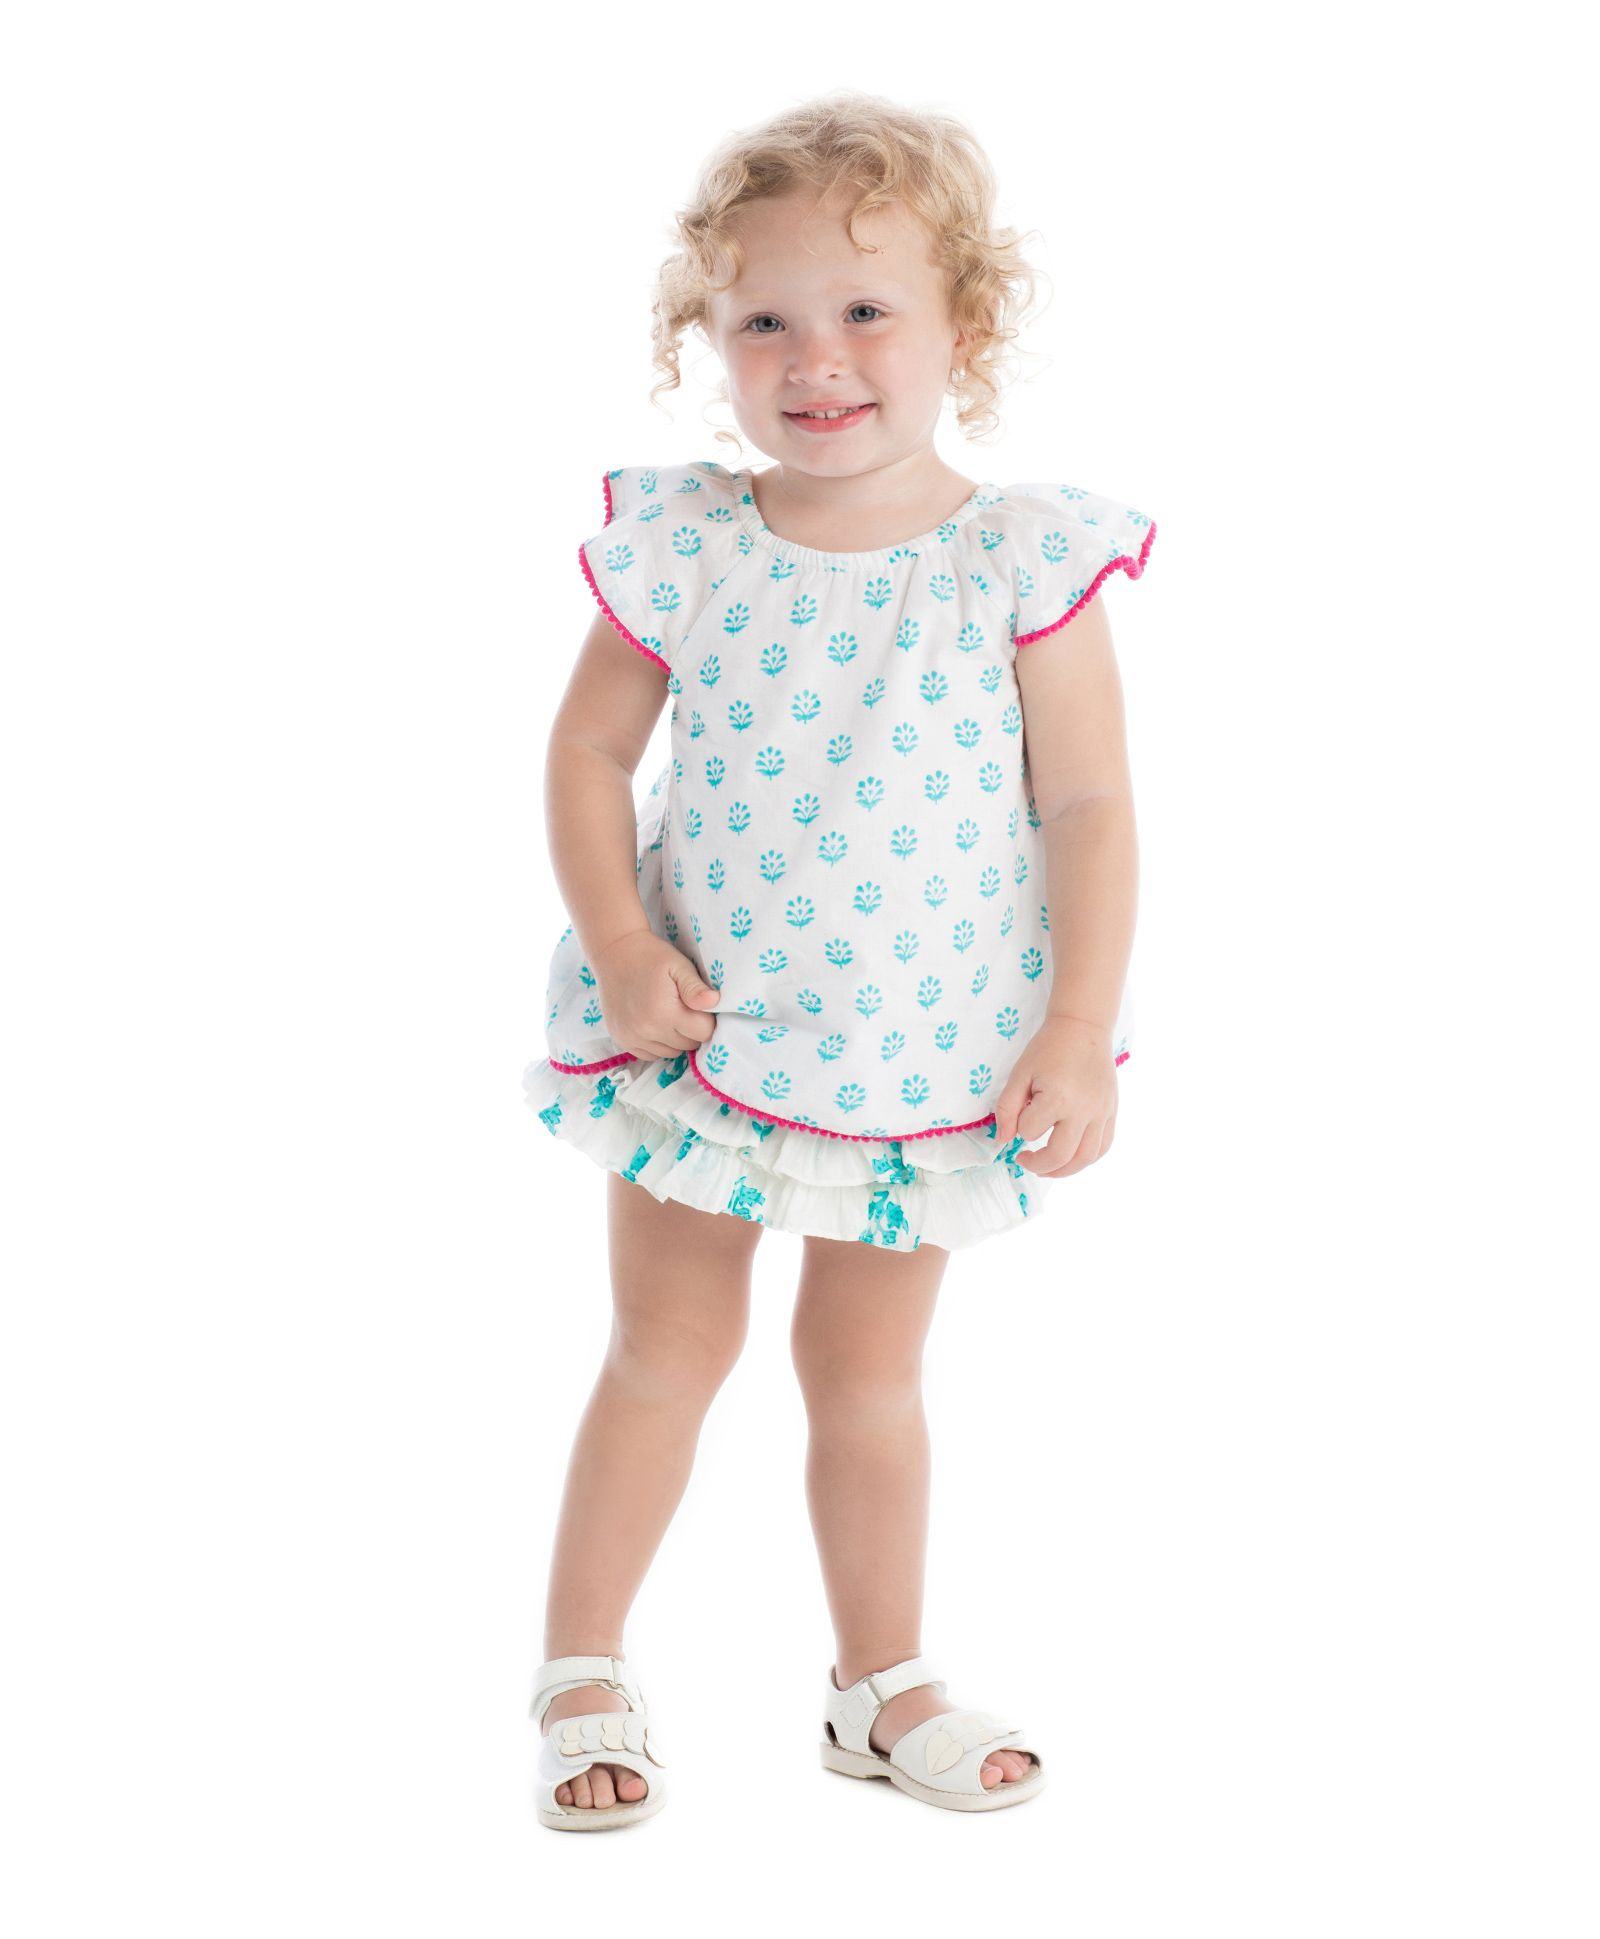 88b23dd6c2 Masala Baby Flutter Sleeves Top And Ruffle Bloomer Jardin Butti Print -  Turquoise